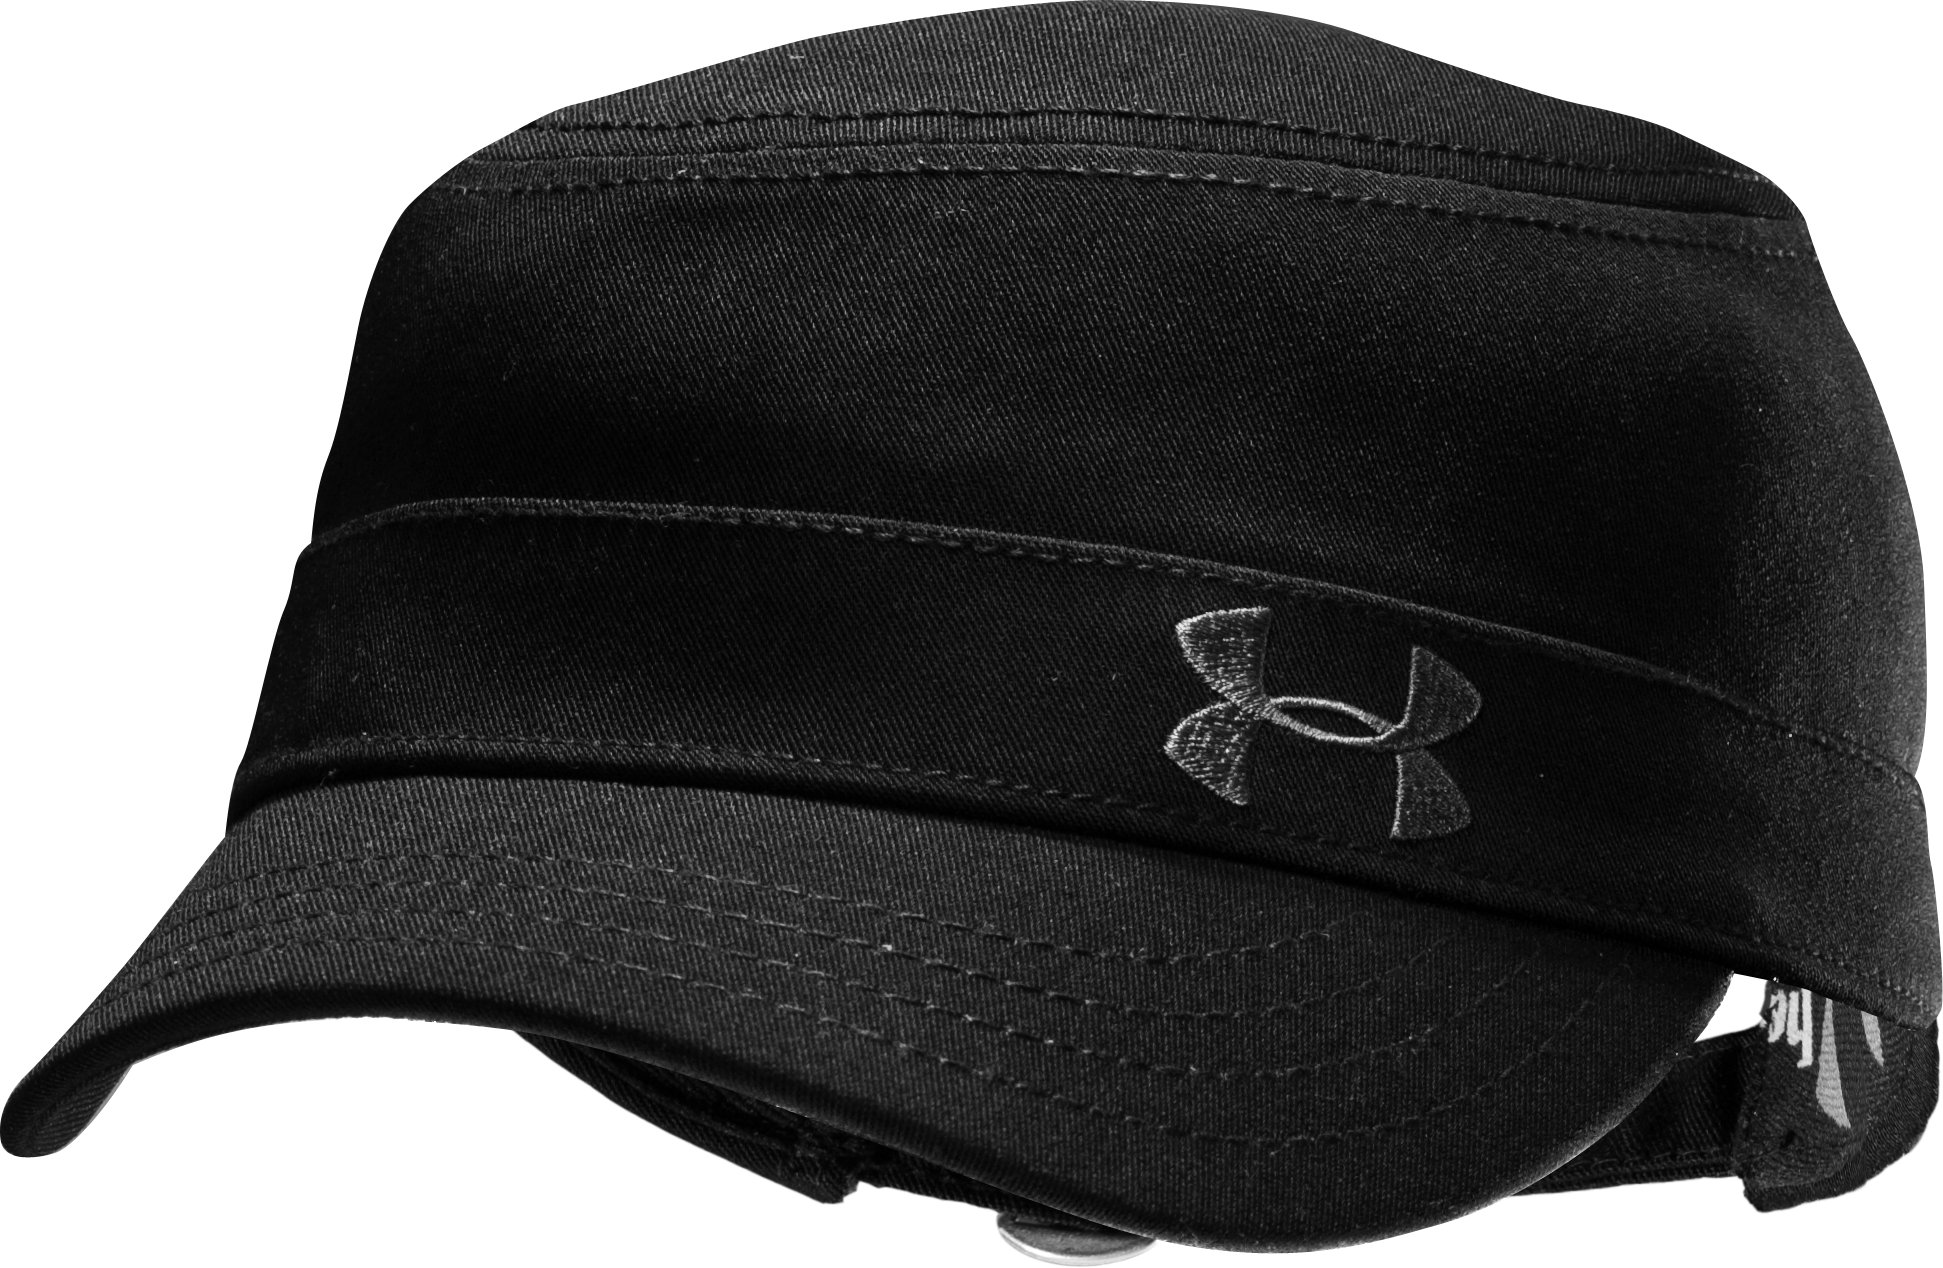 Women's Solid Versa Military Cap, Black , undefined